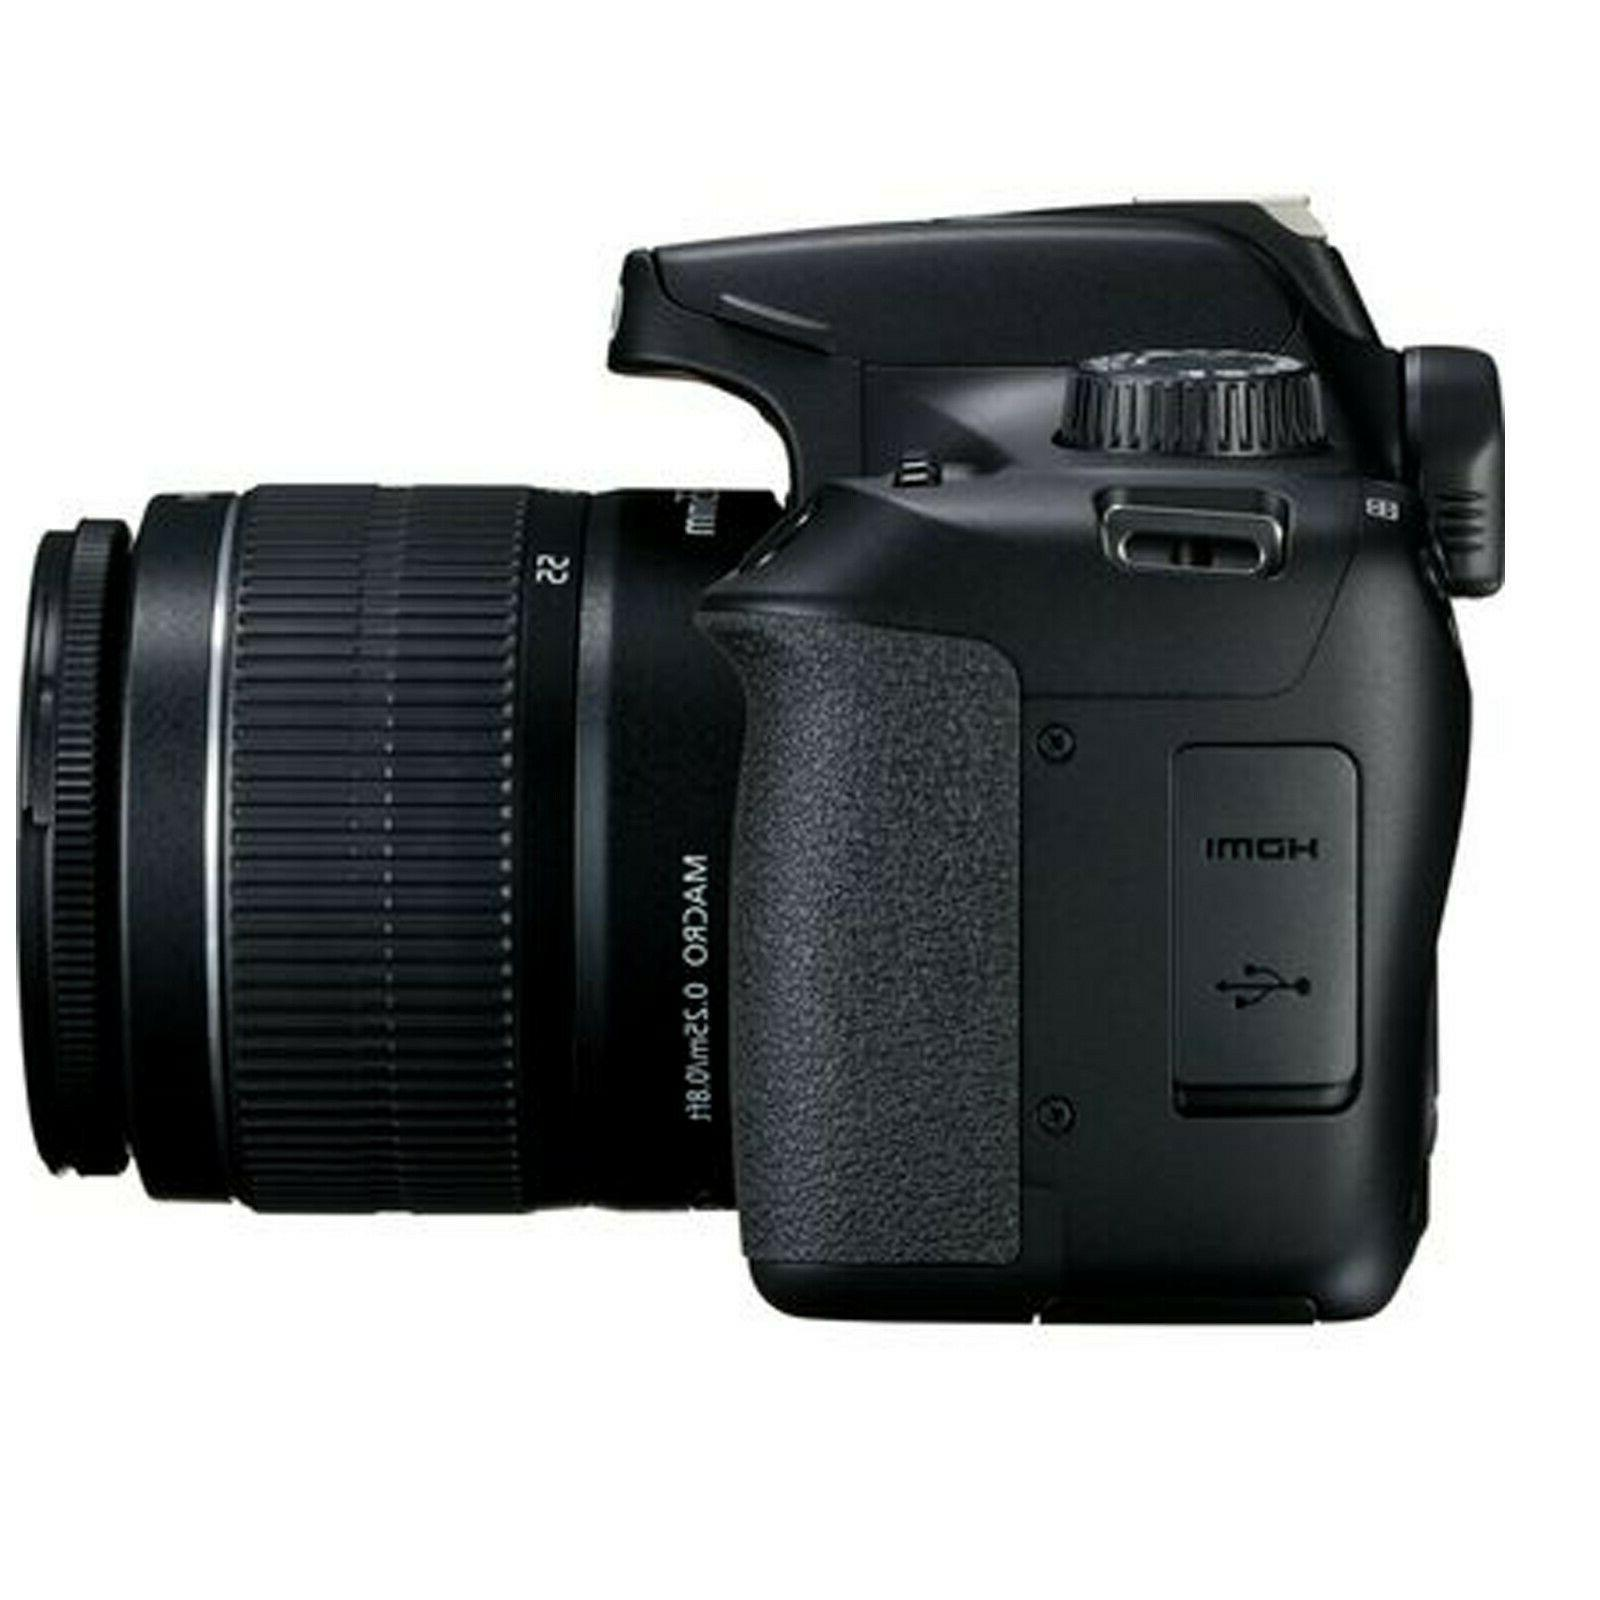 Canon T100 18.0MP DSLR with 18-55mm